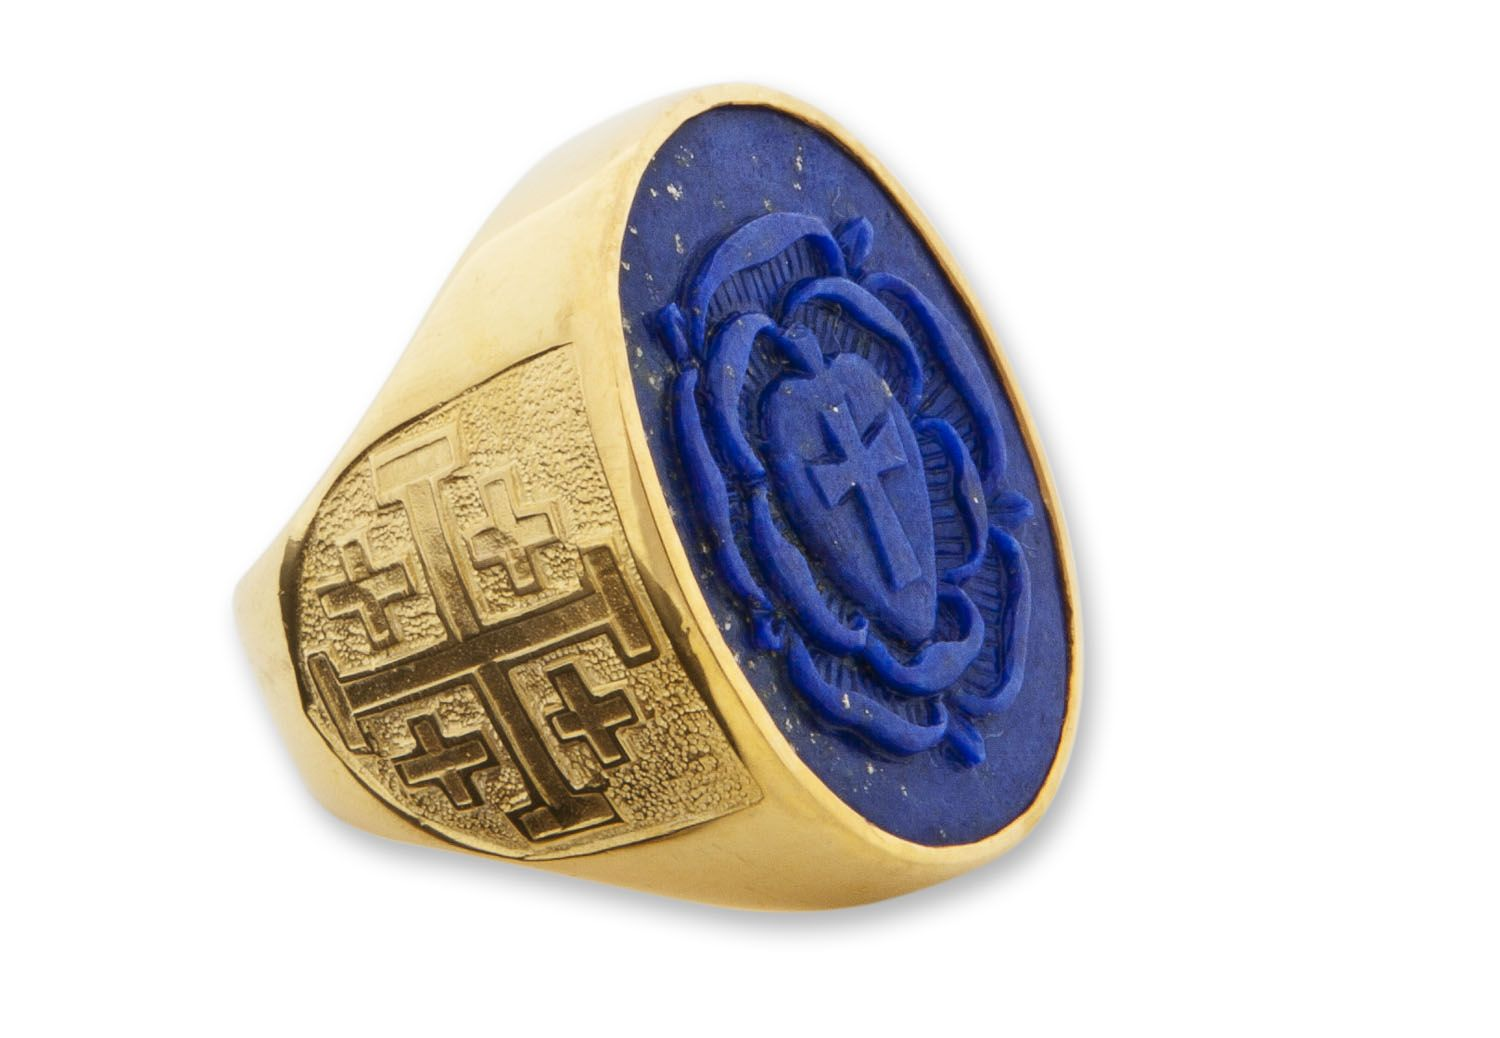 Large Heraldic Size Rosicrucian Ring -sculpted